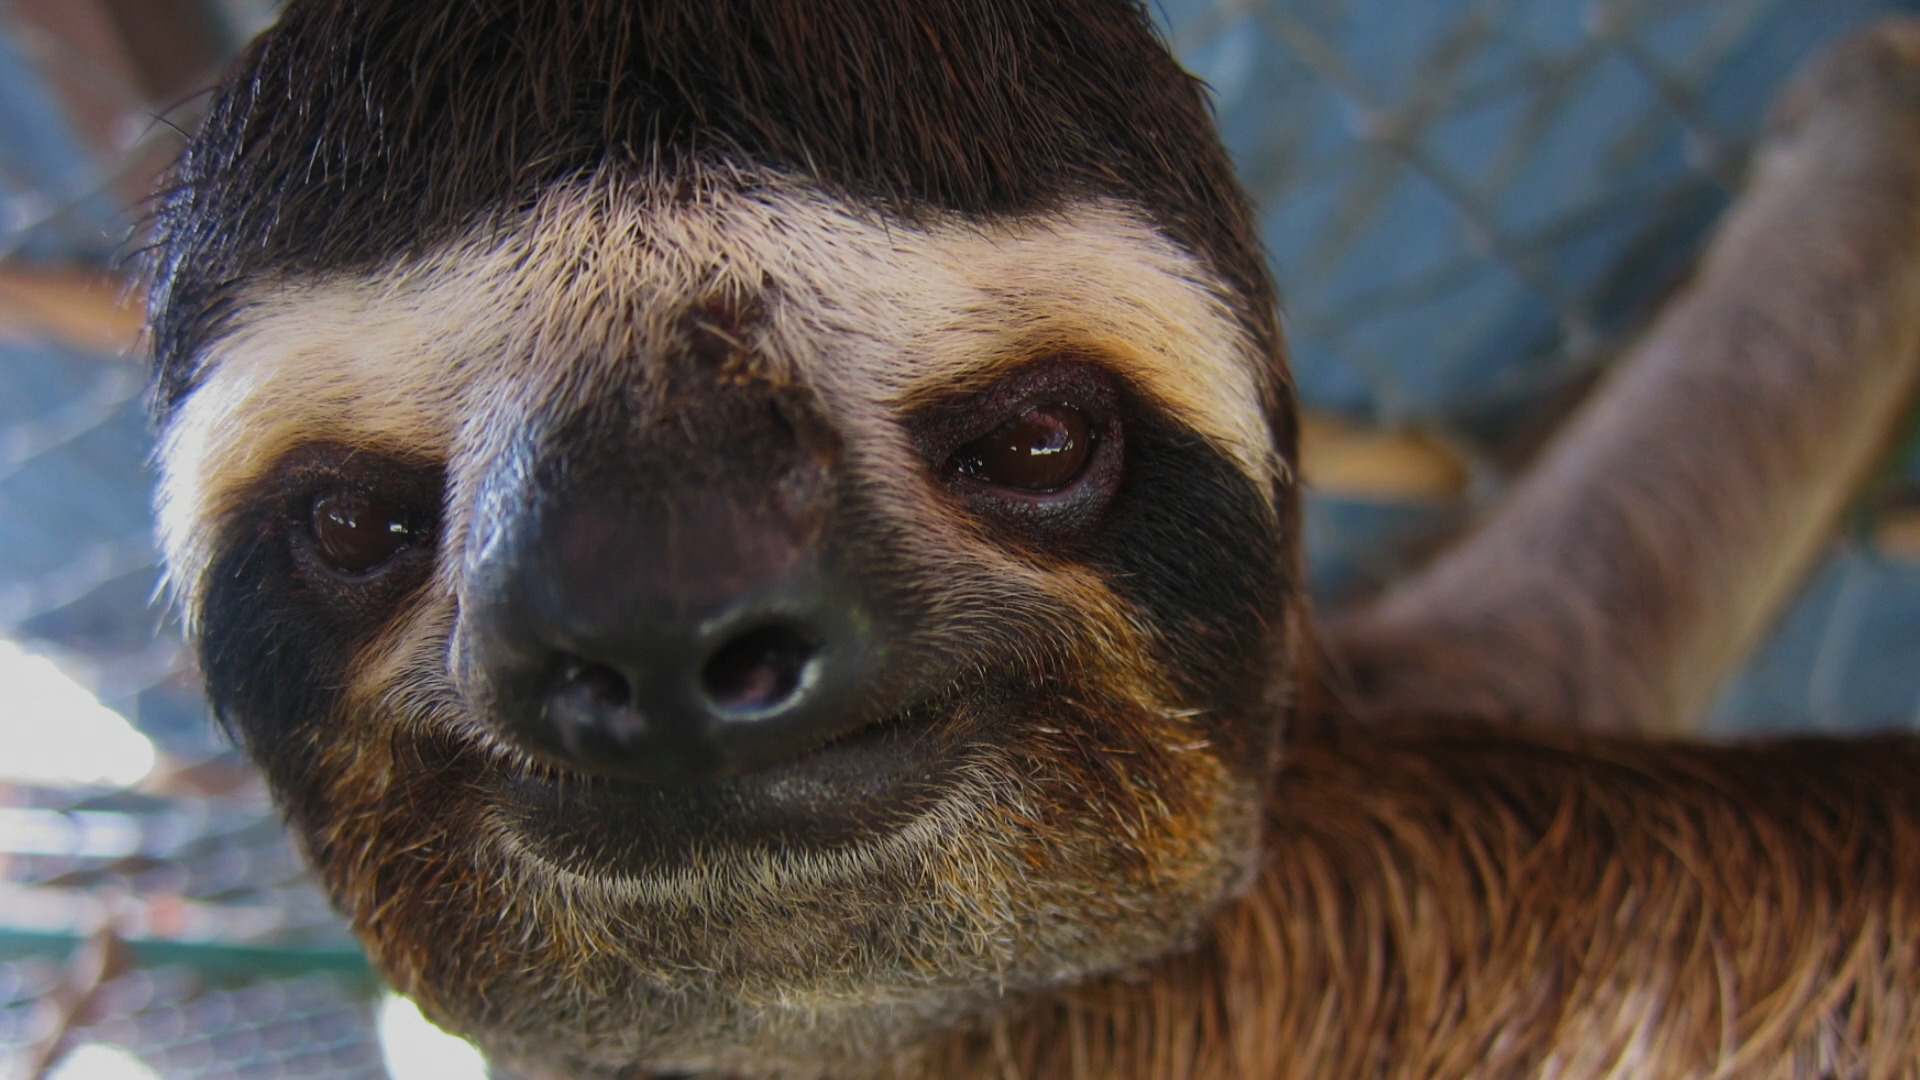 [2] Sloths! The strange life of the world's slowest mammal